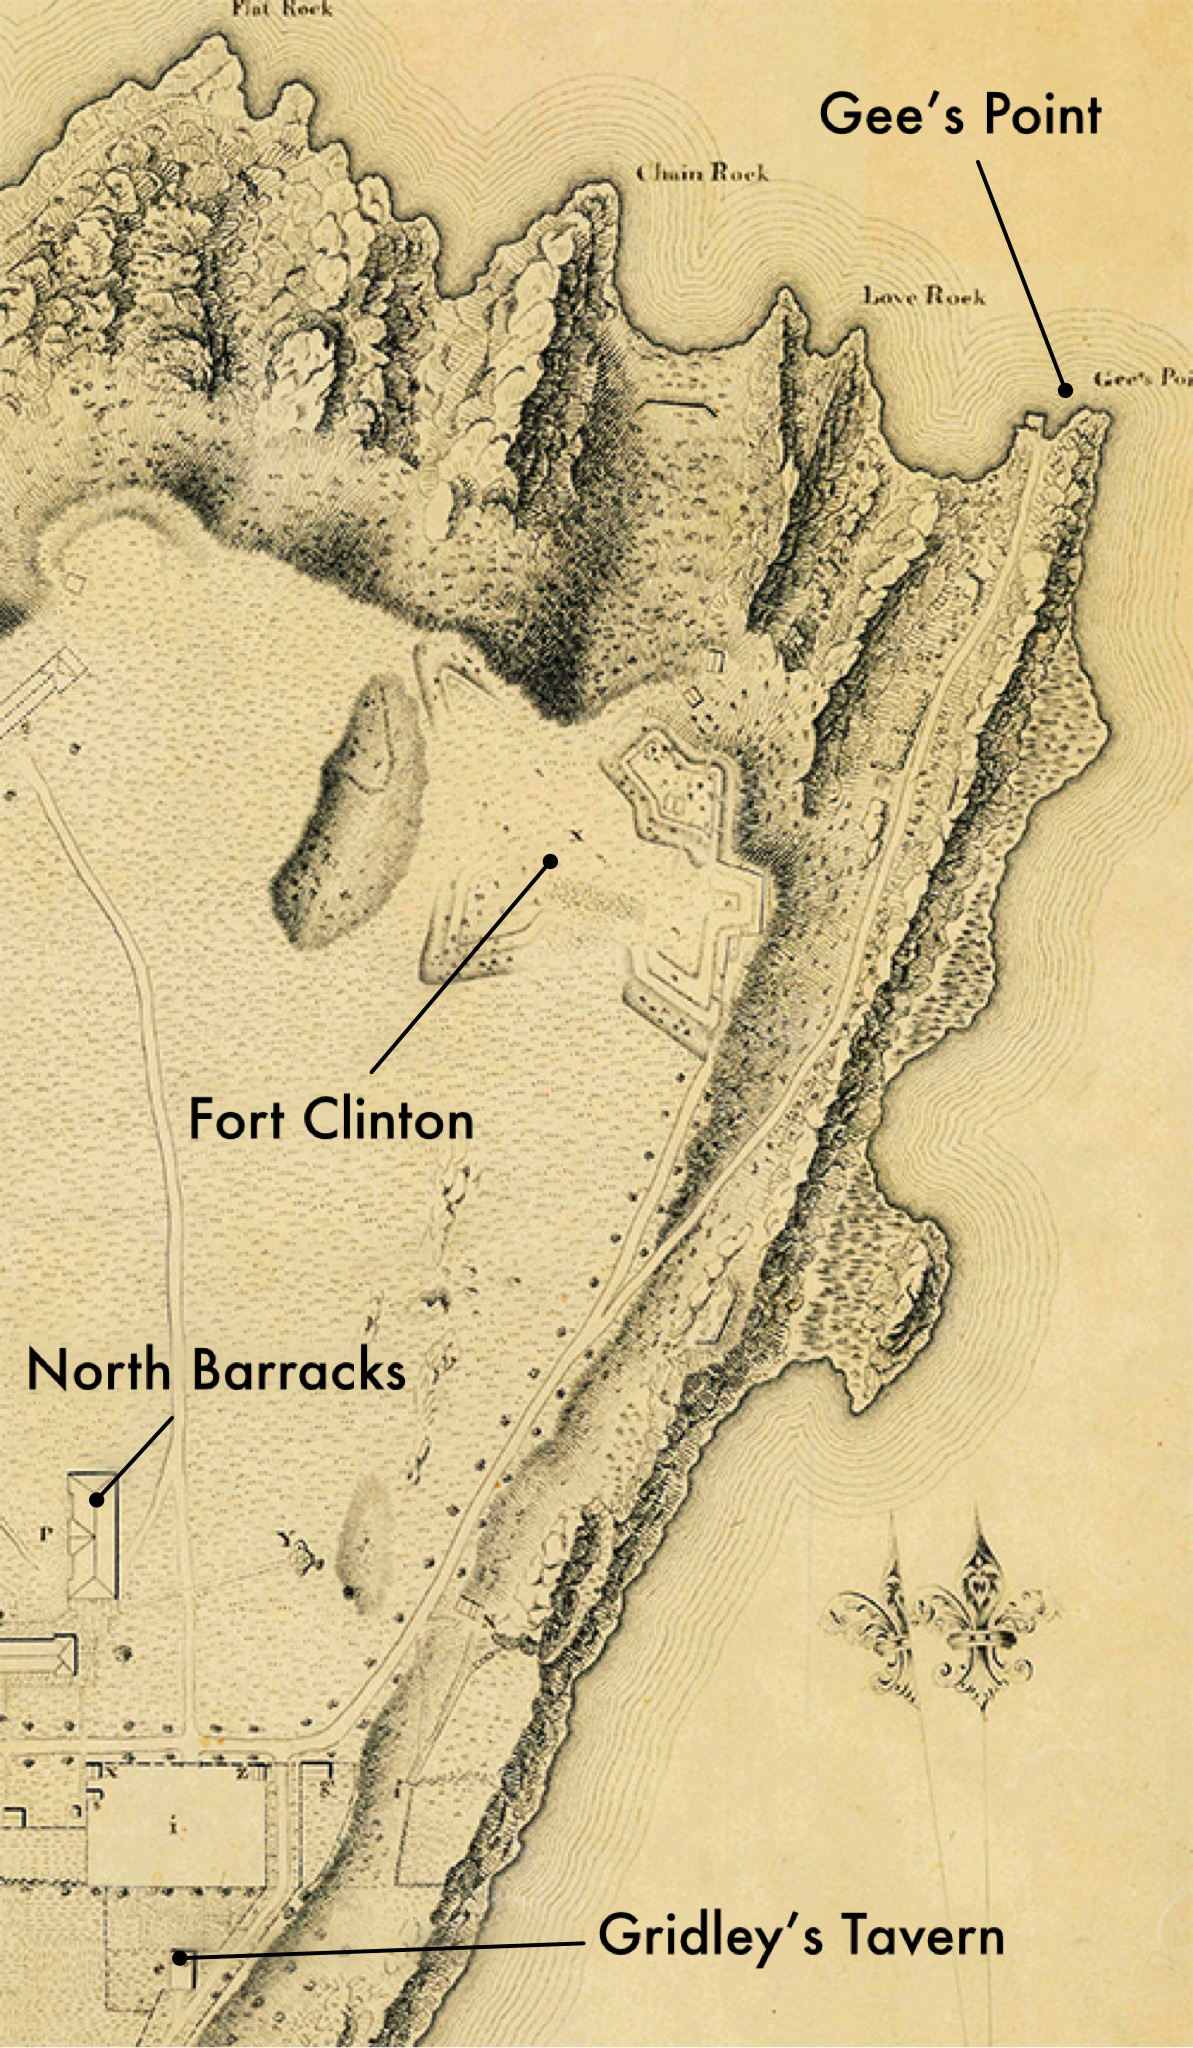 1826 Map of West Point by T.B.Brown showing the location of Gee's Point and Gridley's Tavern. Labels by Author.